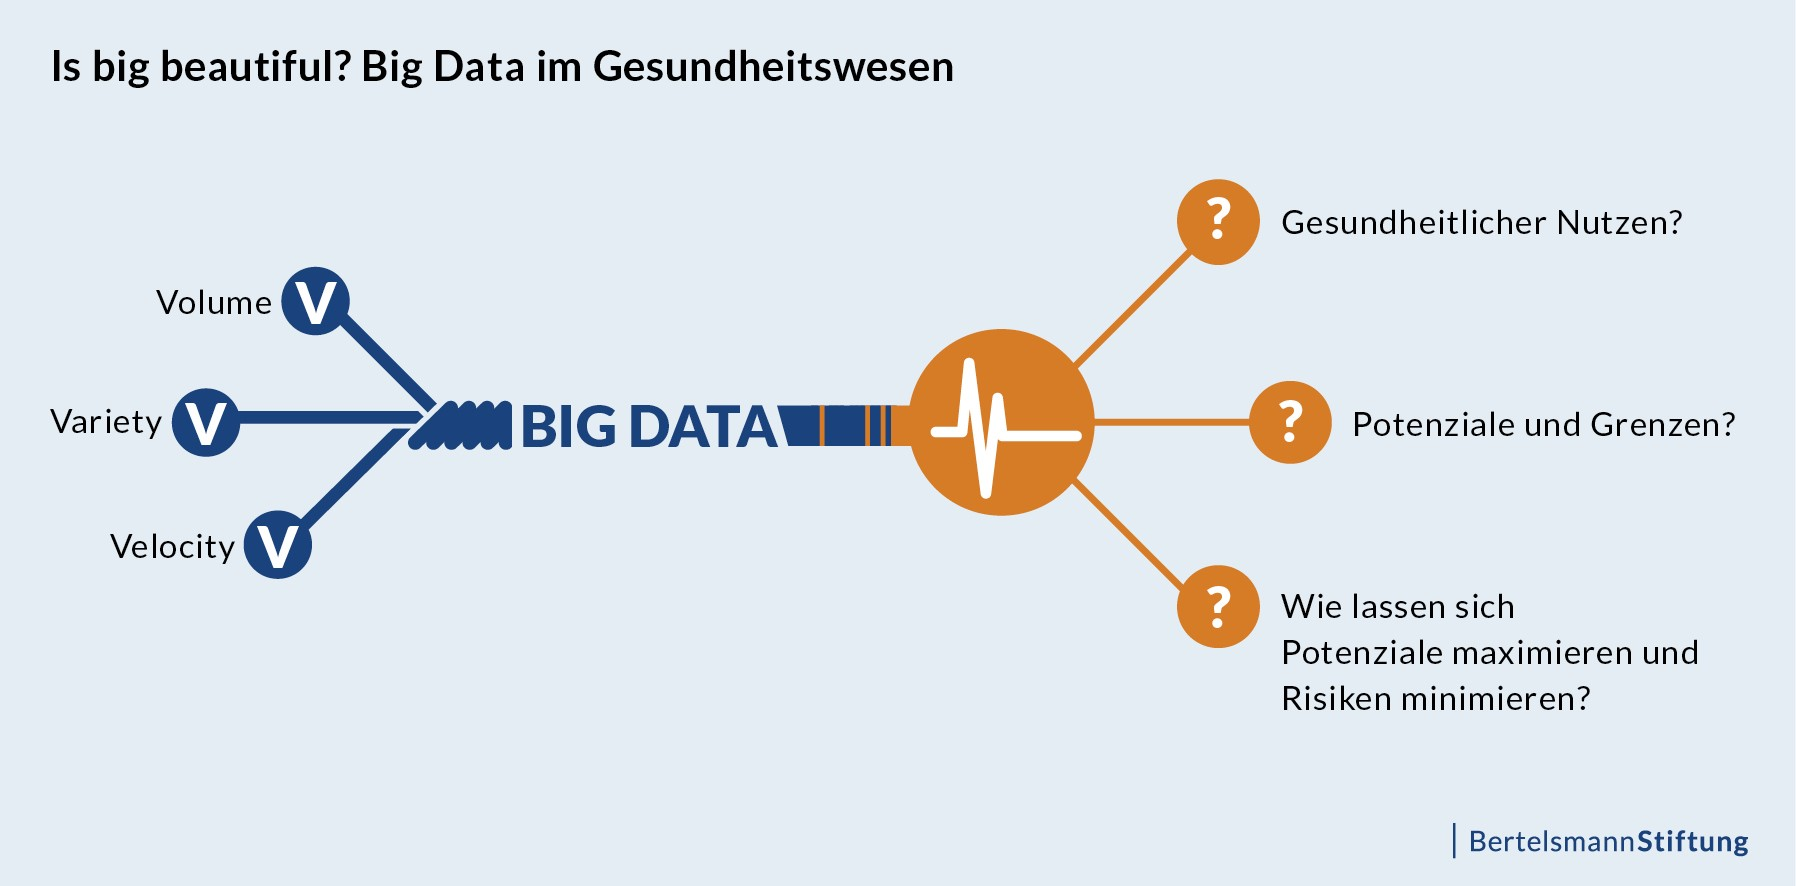 Is big beautiful? Big Data im Gesundheitswesen